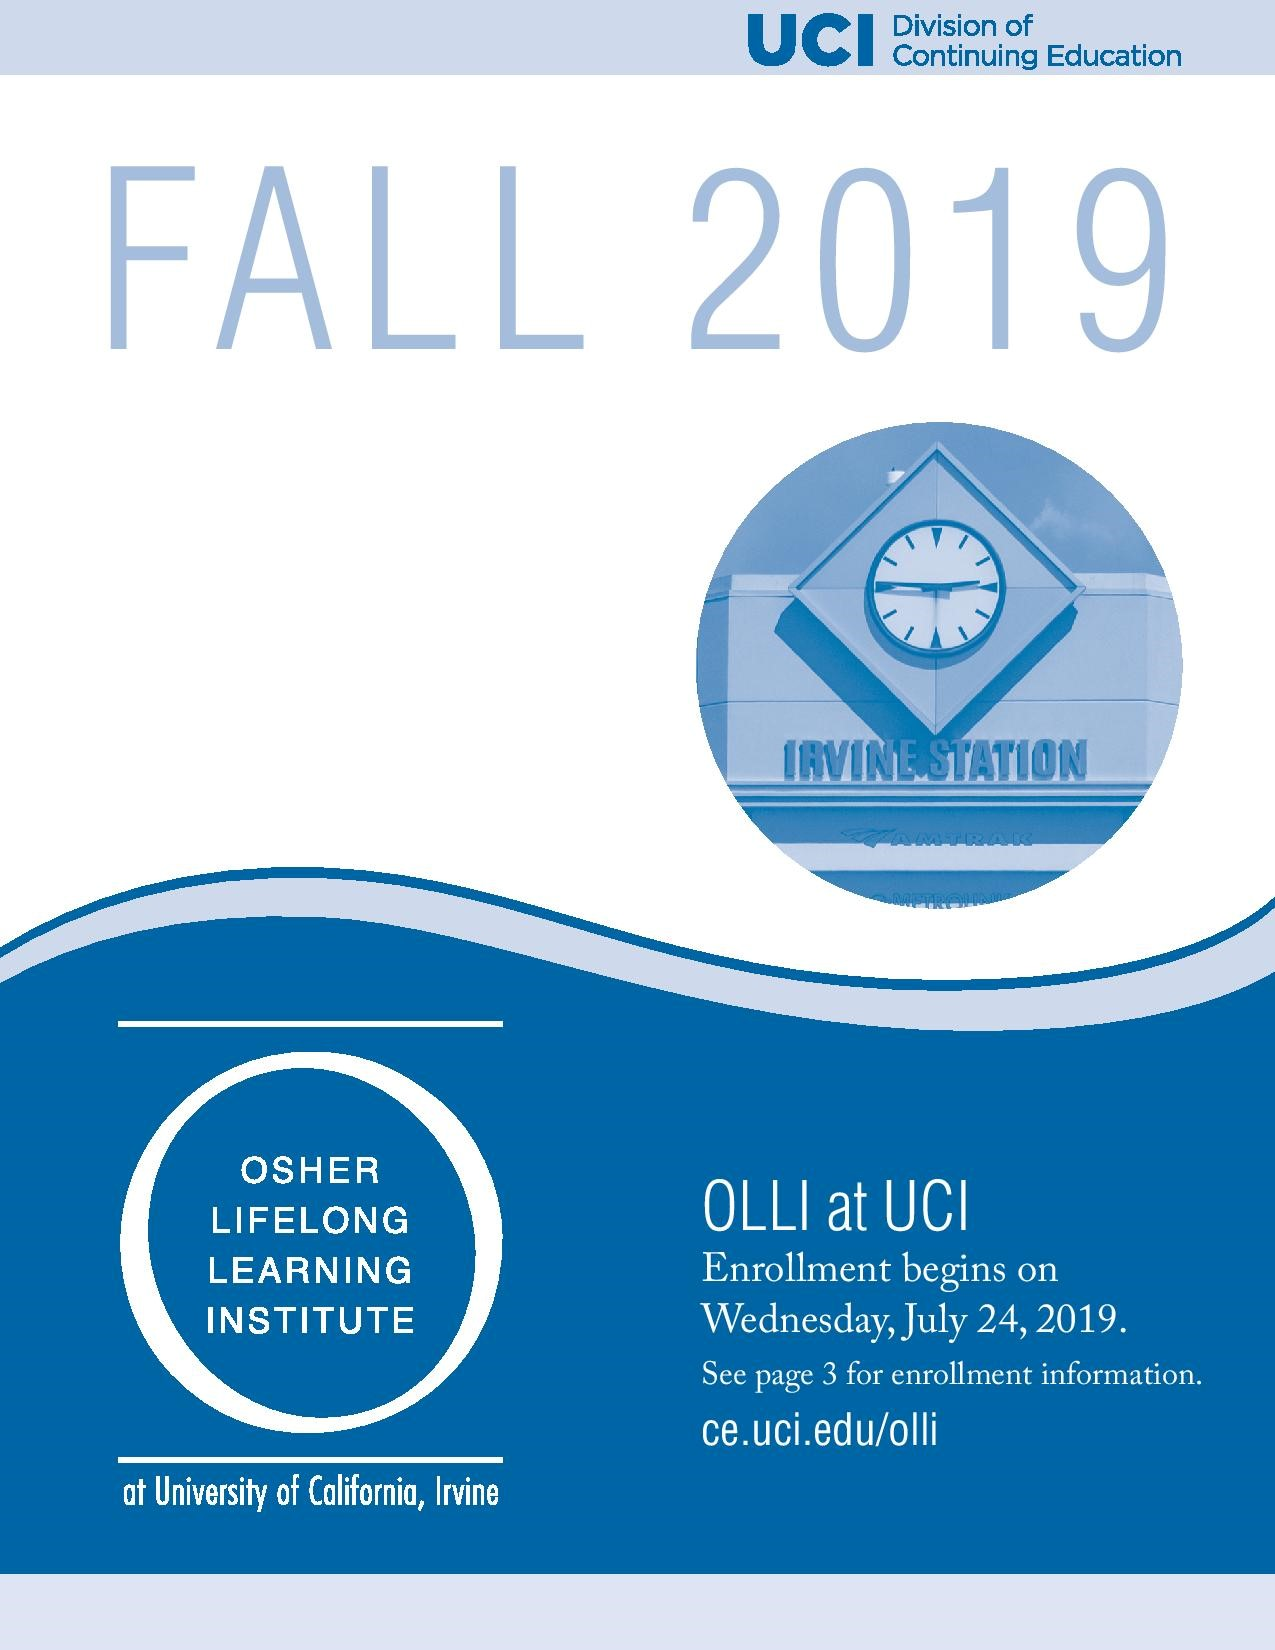 About Us | Welcome to the OLLI at UCI Blog